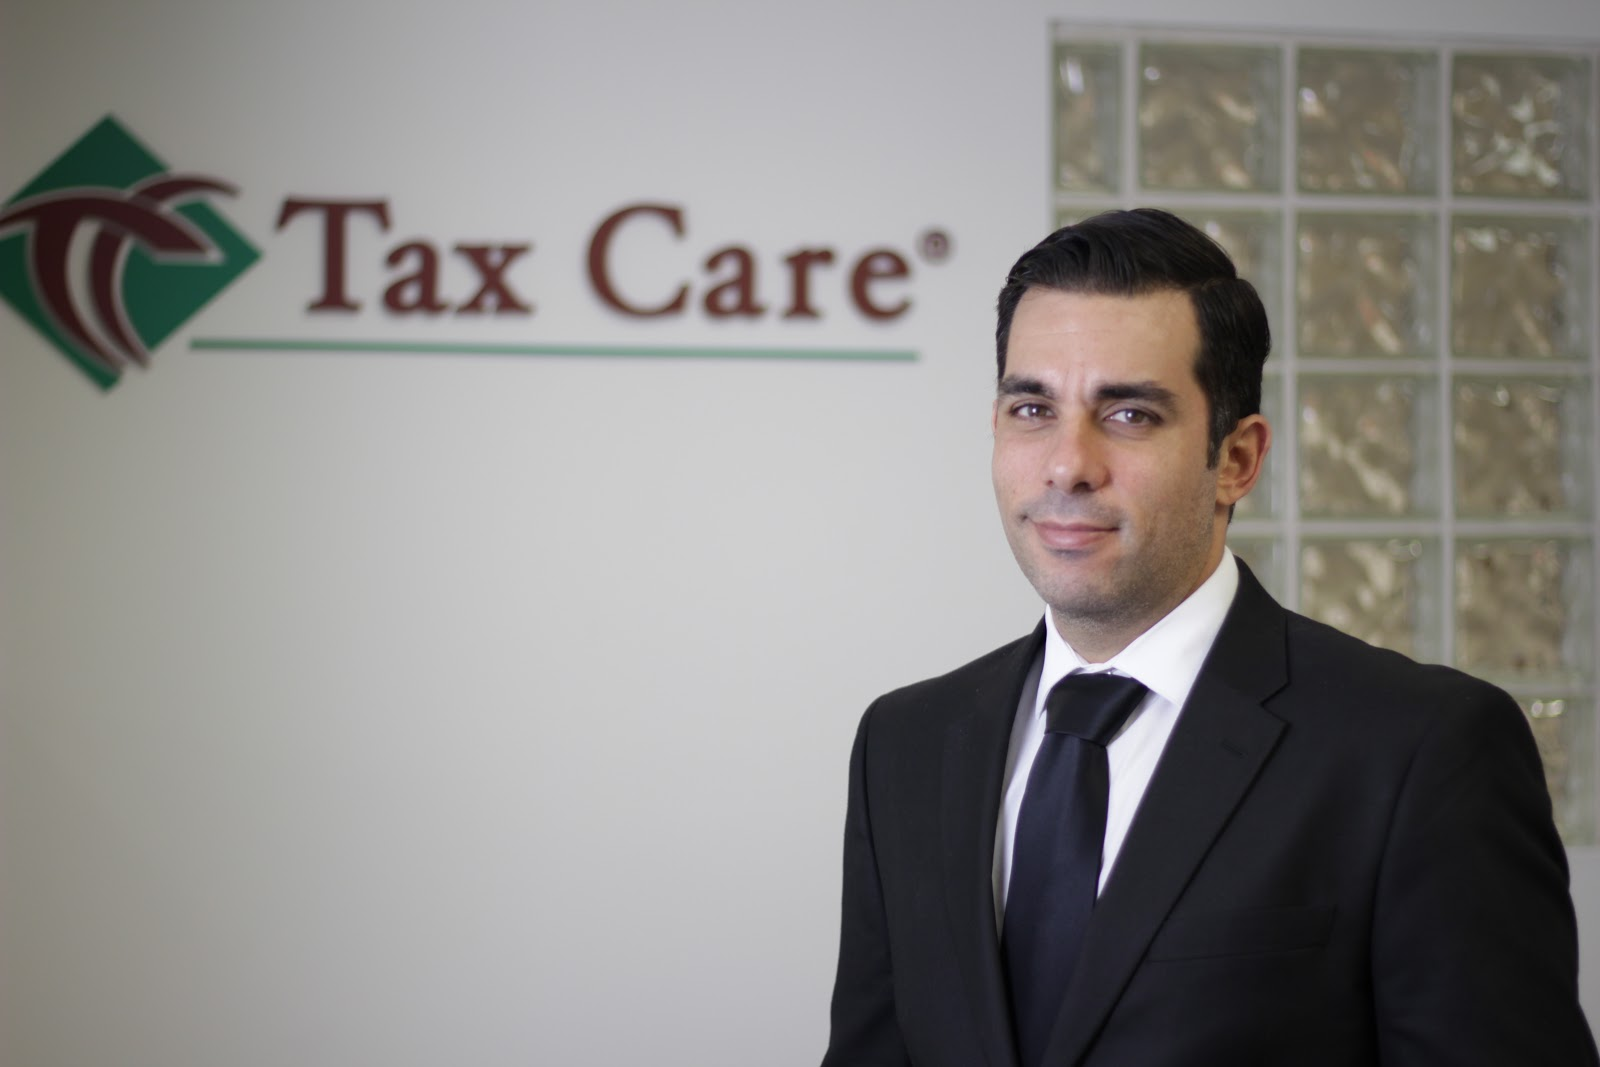 Tax Care's employee posing in front of signage